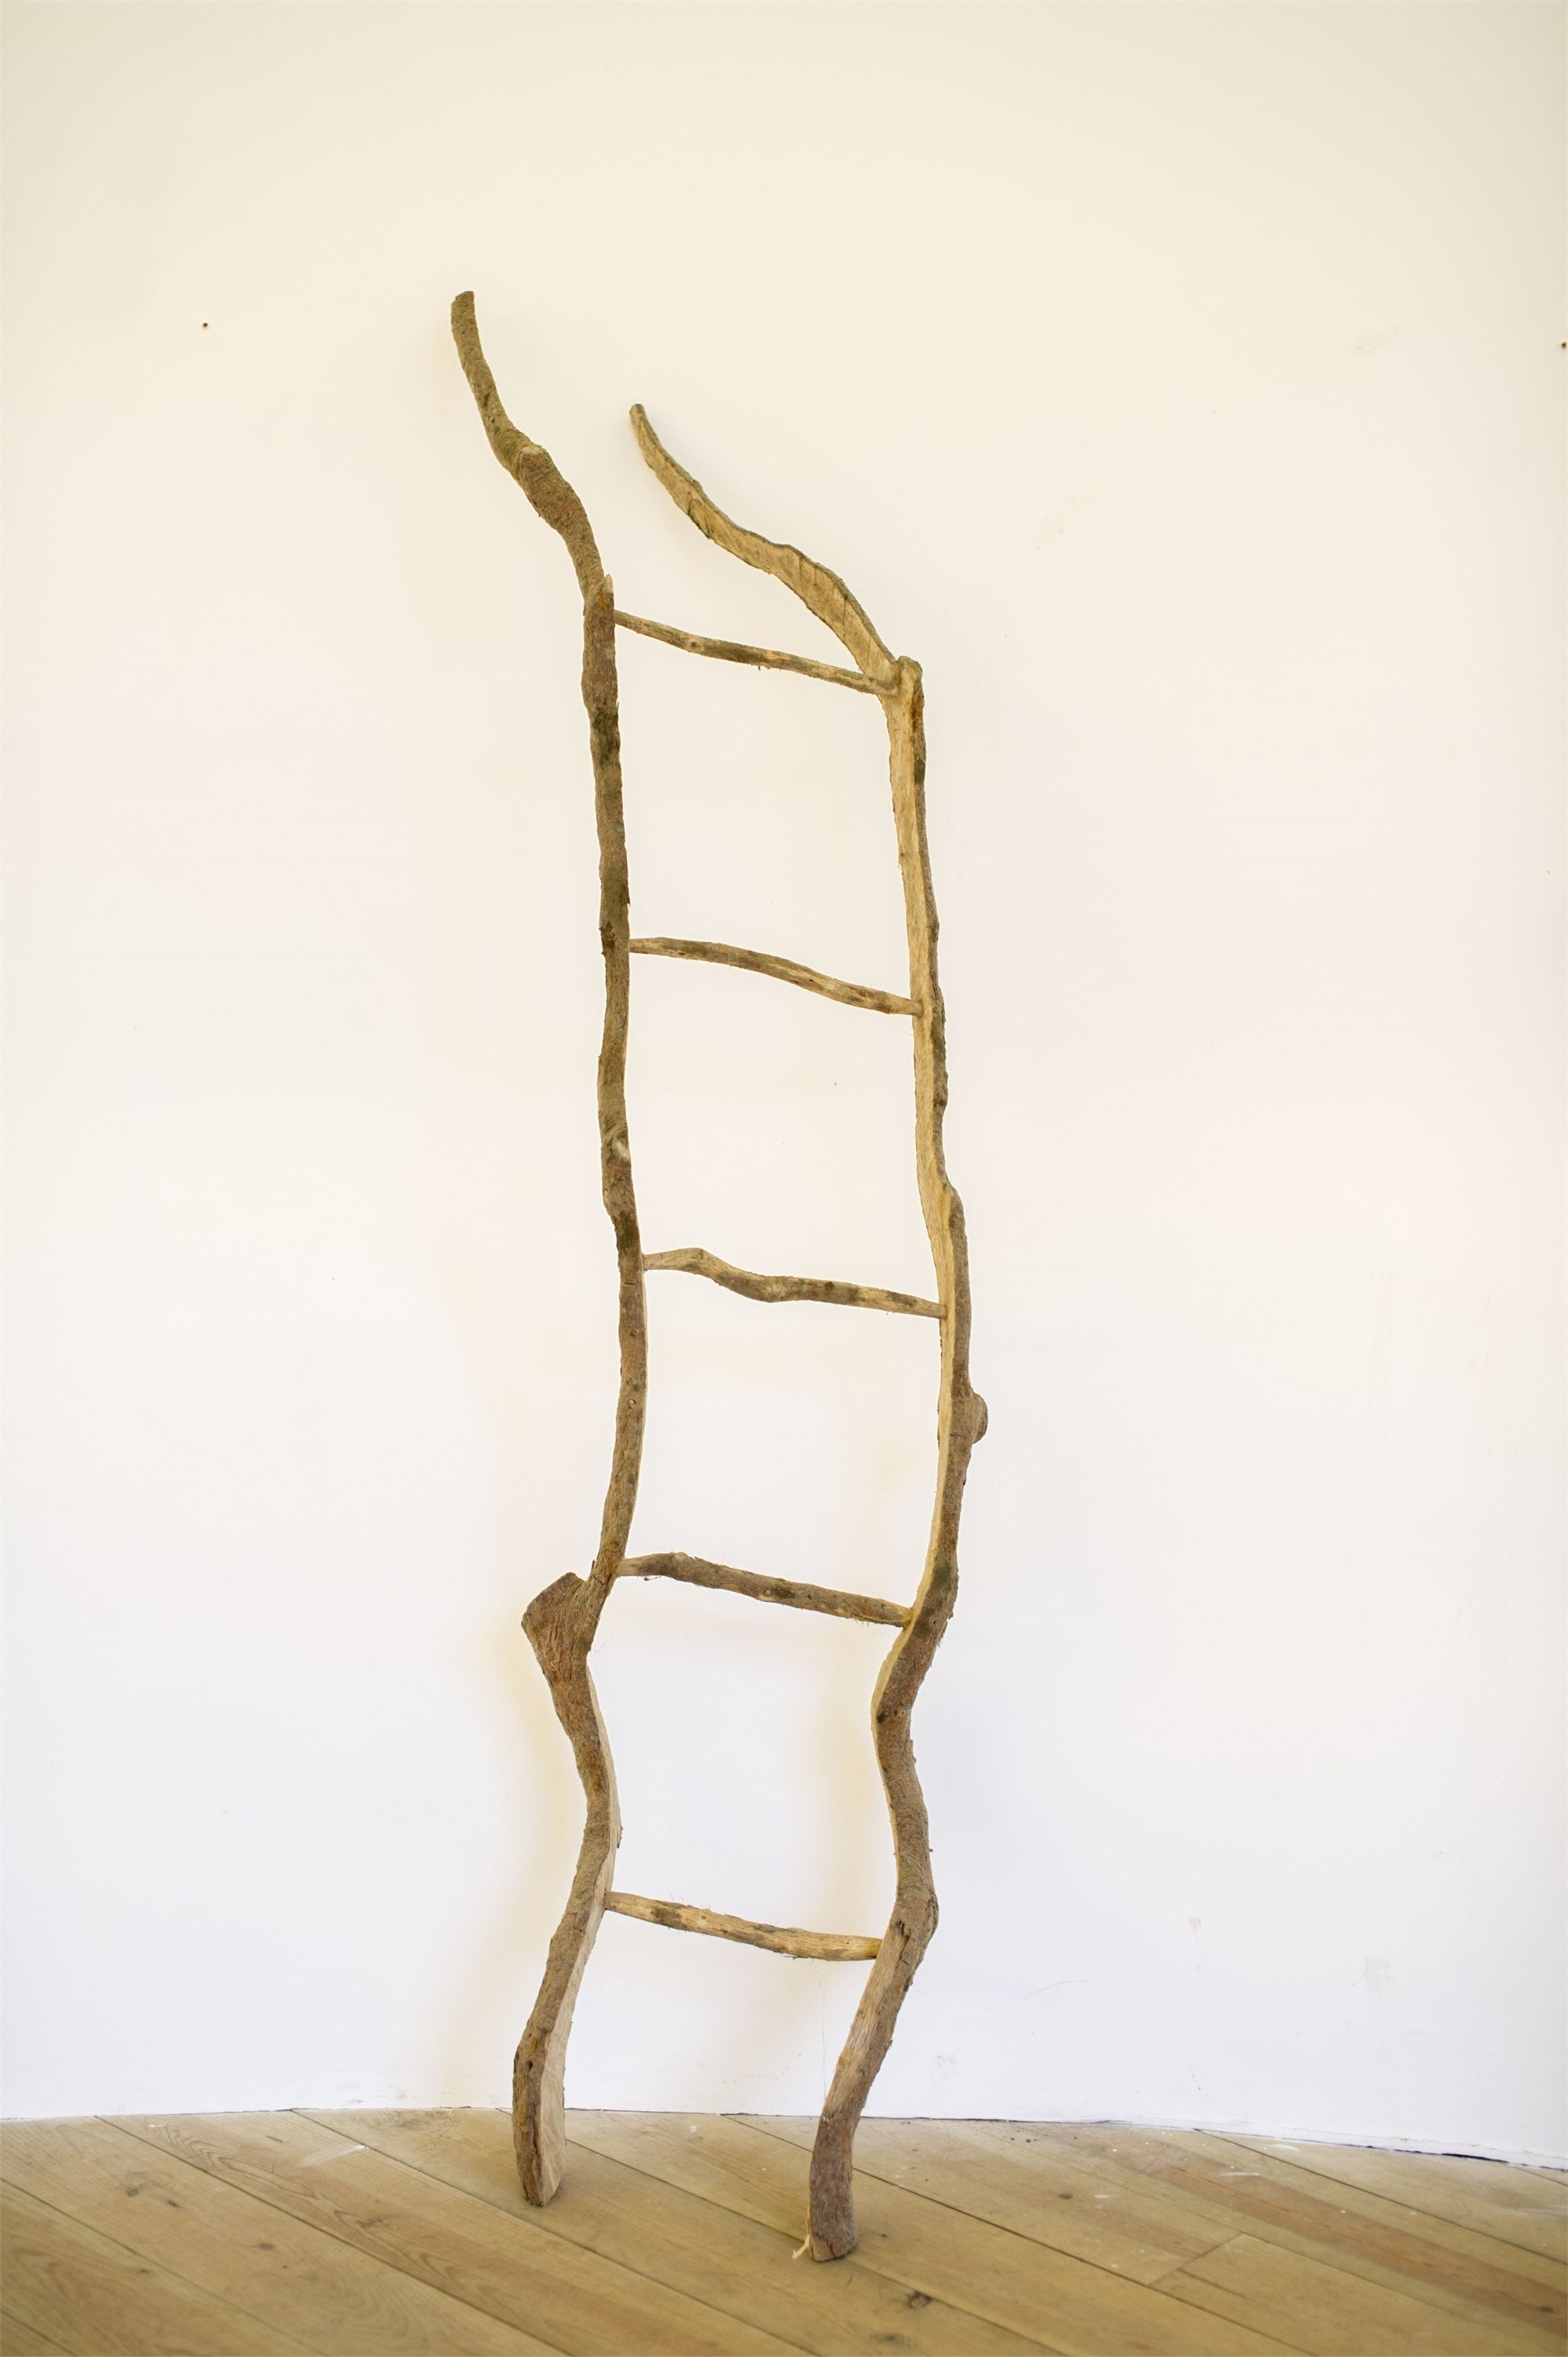 Série Escadas para o Céu, original Nature Wood Sculpture by Paulo Neves